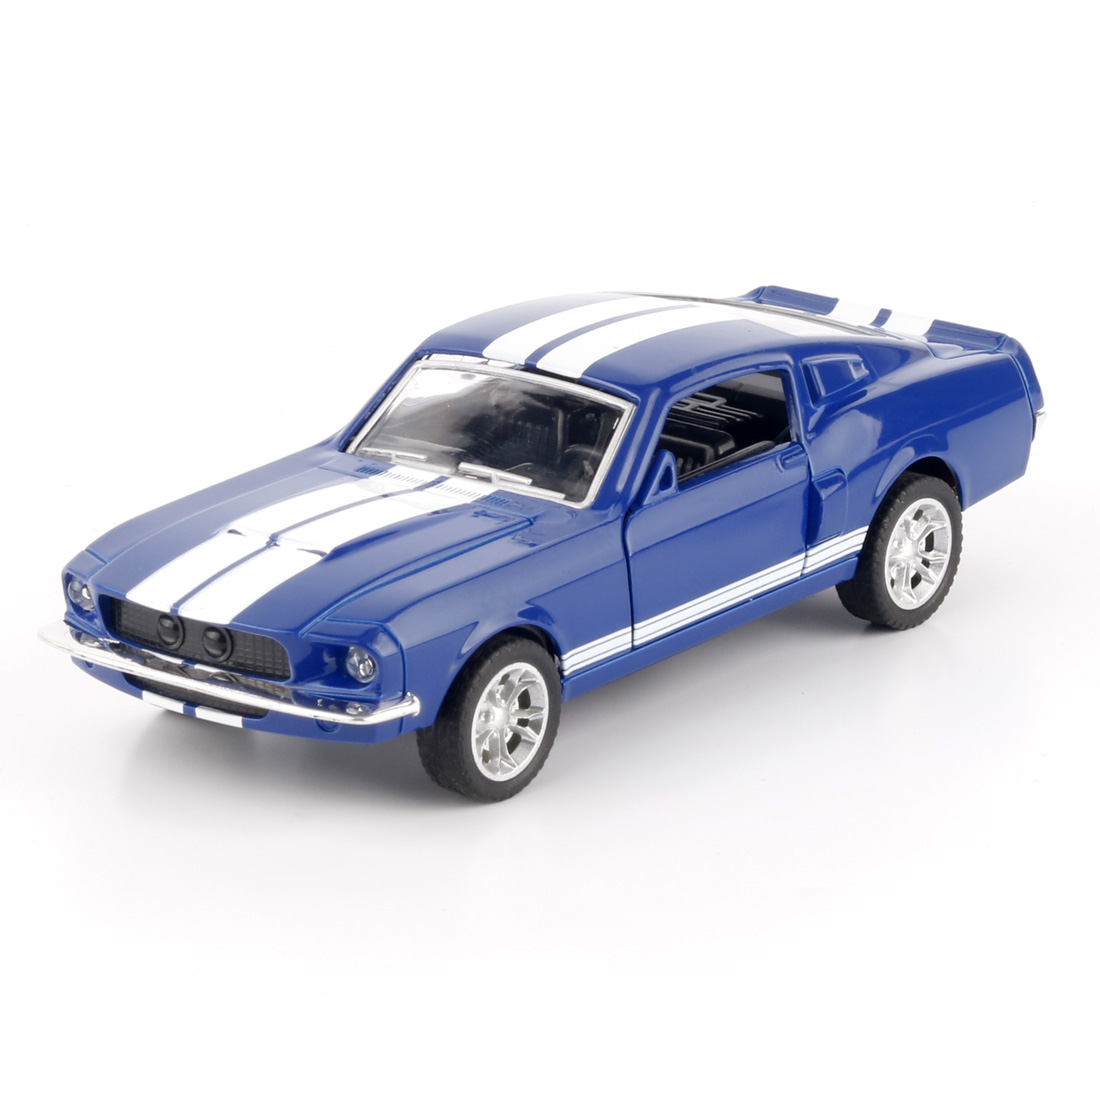 JMT Brand Car GT500 1:32 Alloy Diecast Metal Pull Car Door Openable Race Sport Cars Toy for Boy Birthday Presents